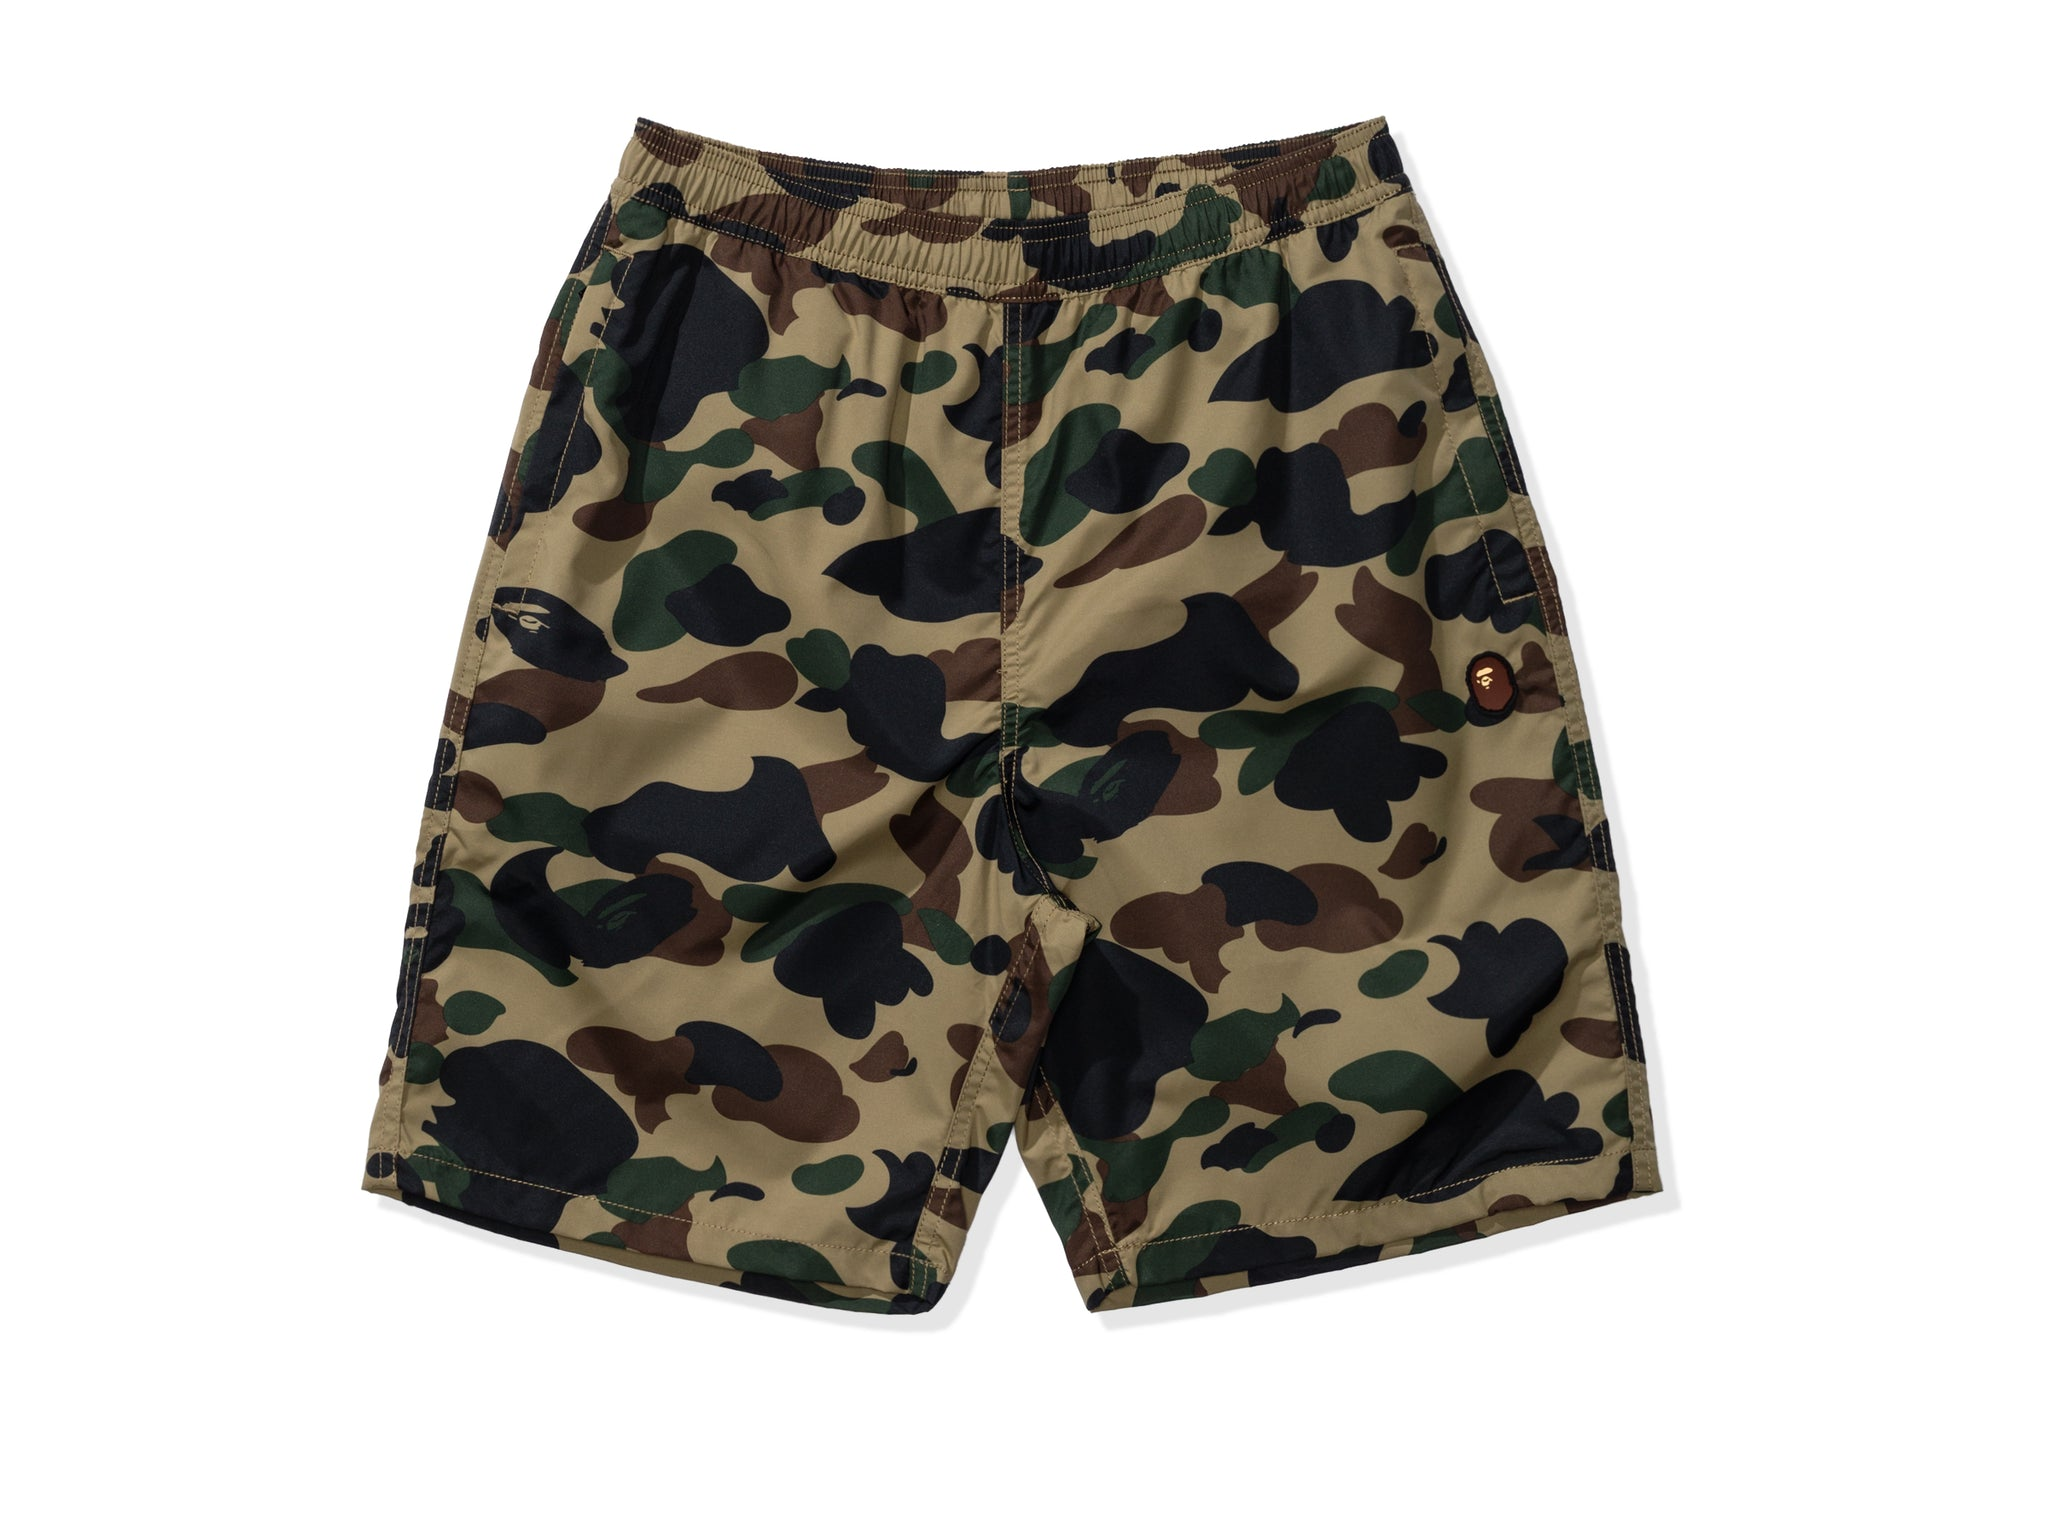 BAPE 1ST CAMO BEACH PANTS